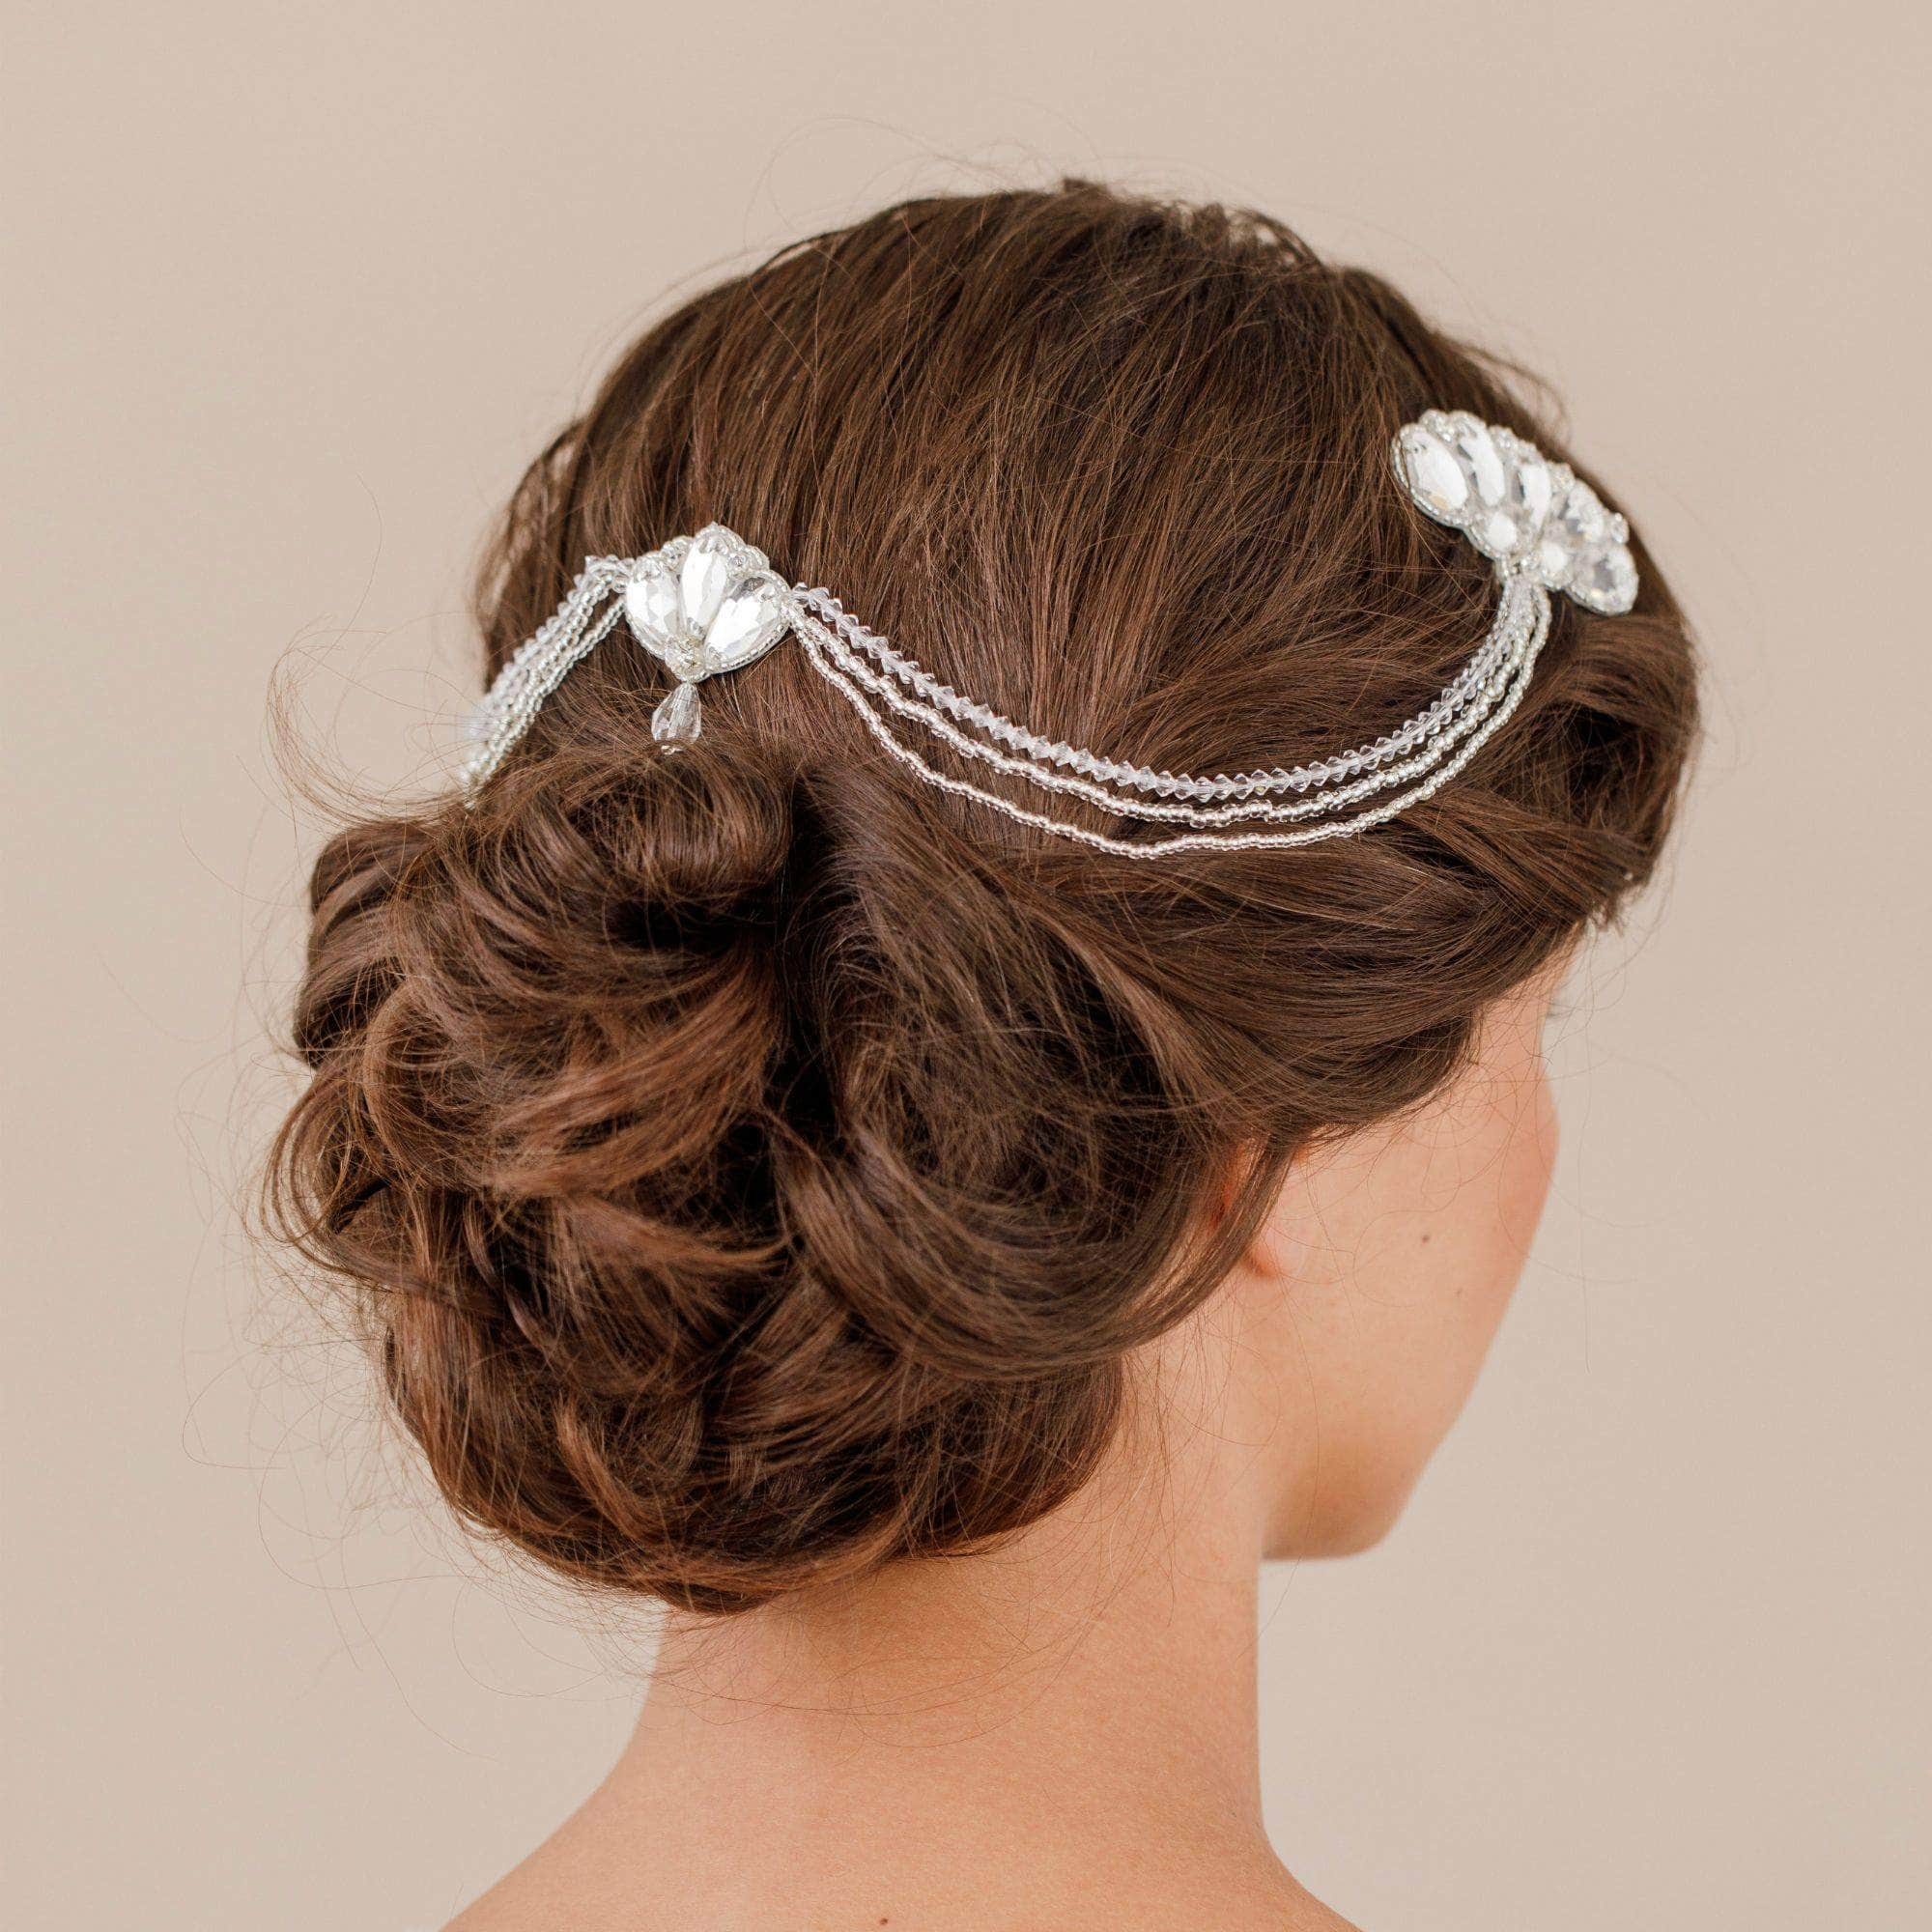 deco wedding hair comb with chains - 'bernice' | britten